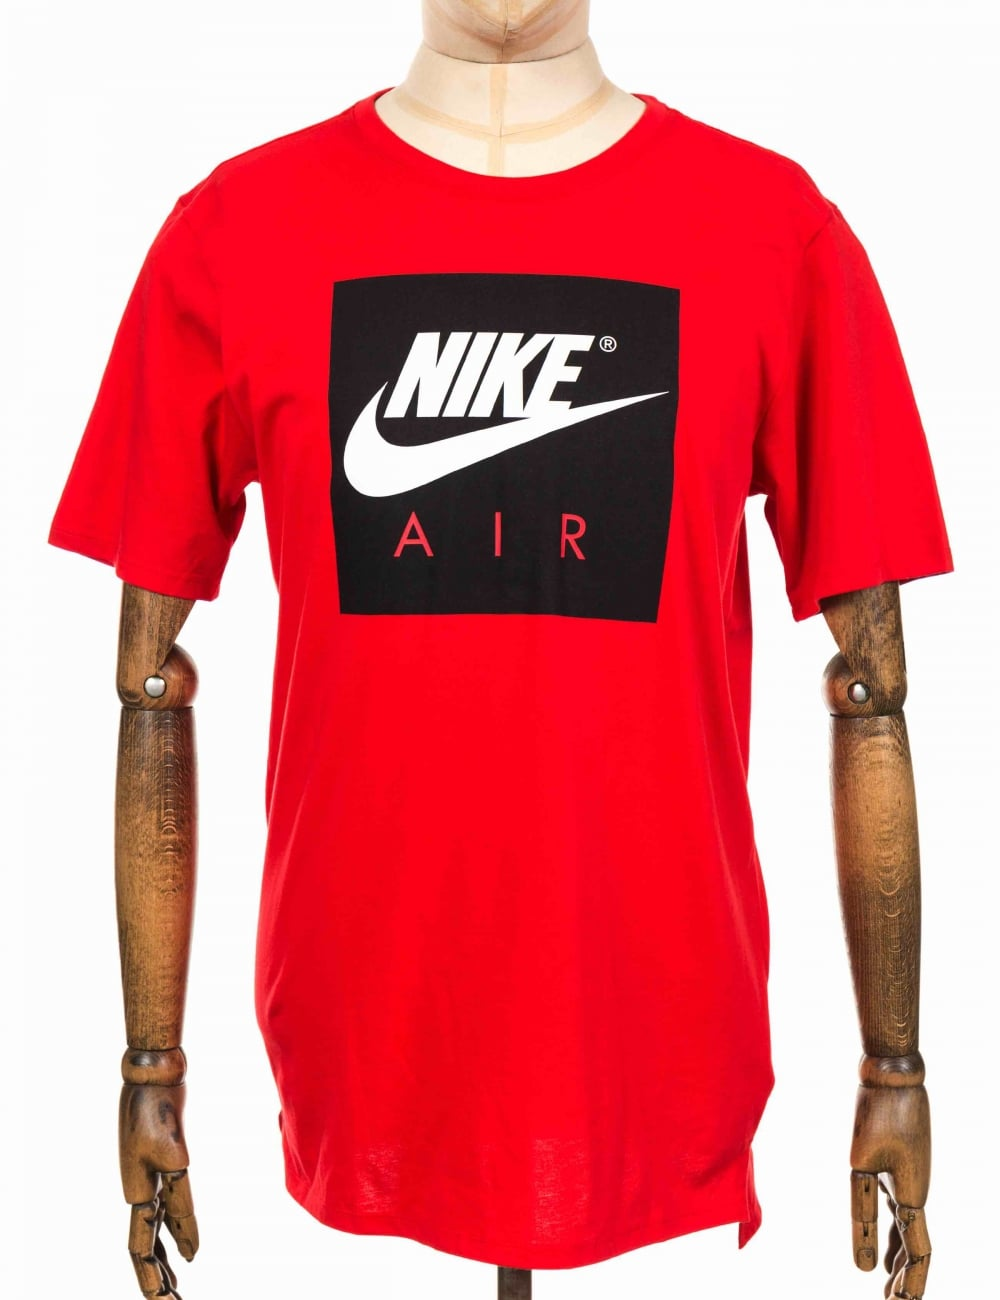 81e391e80 Nike NSW Air Sport Tee - University Red/White - Clothing from Fat ...